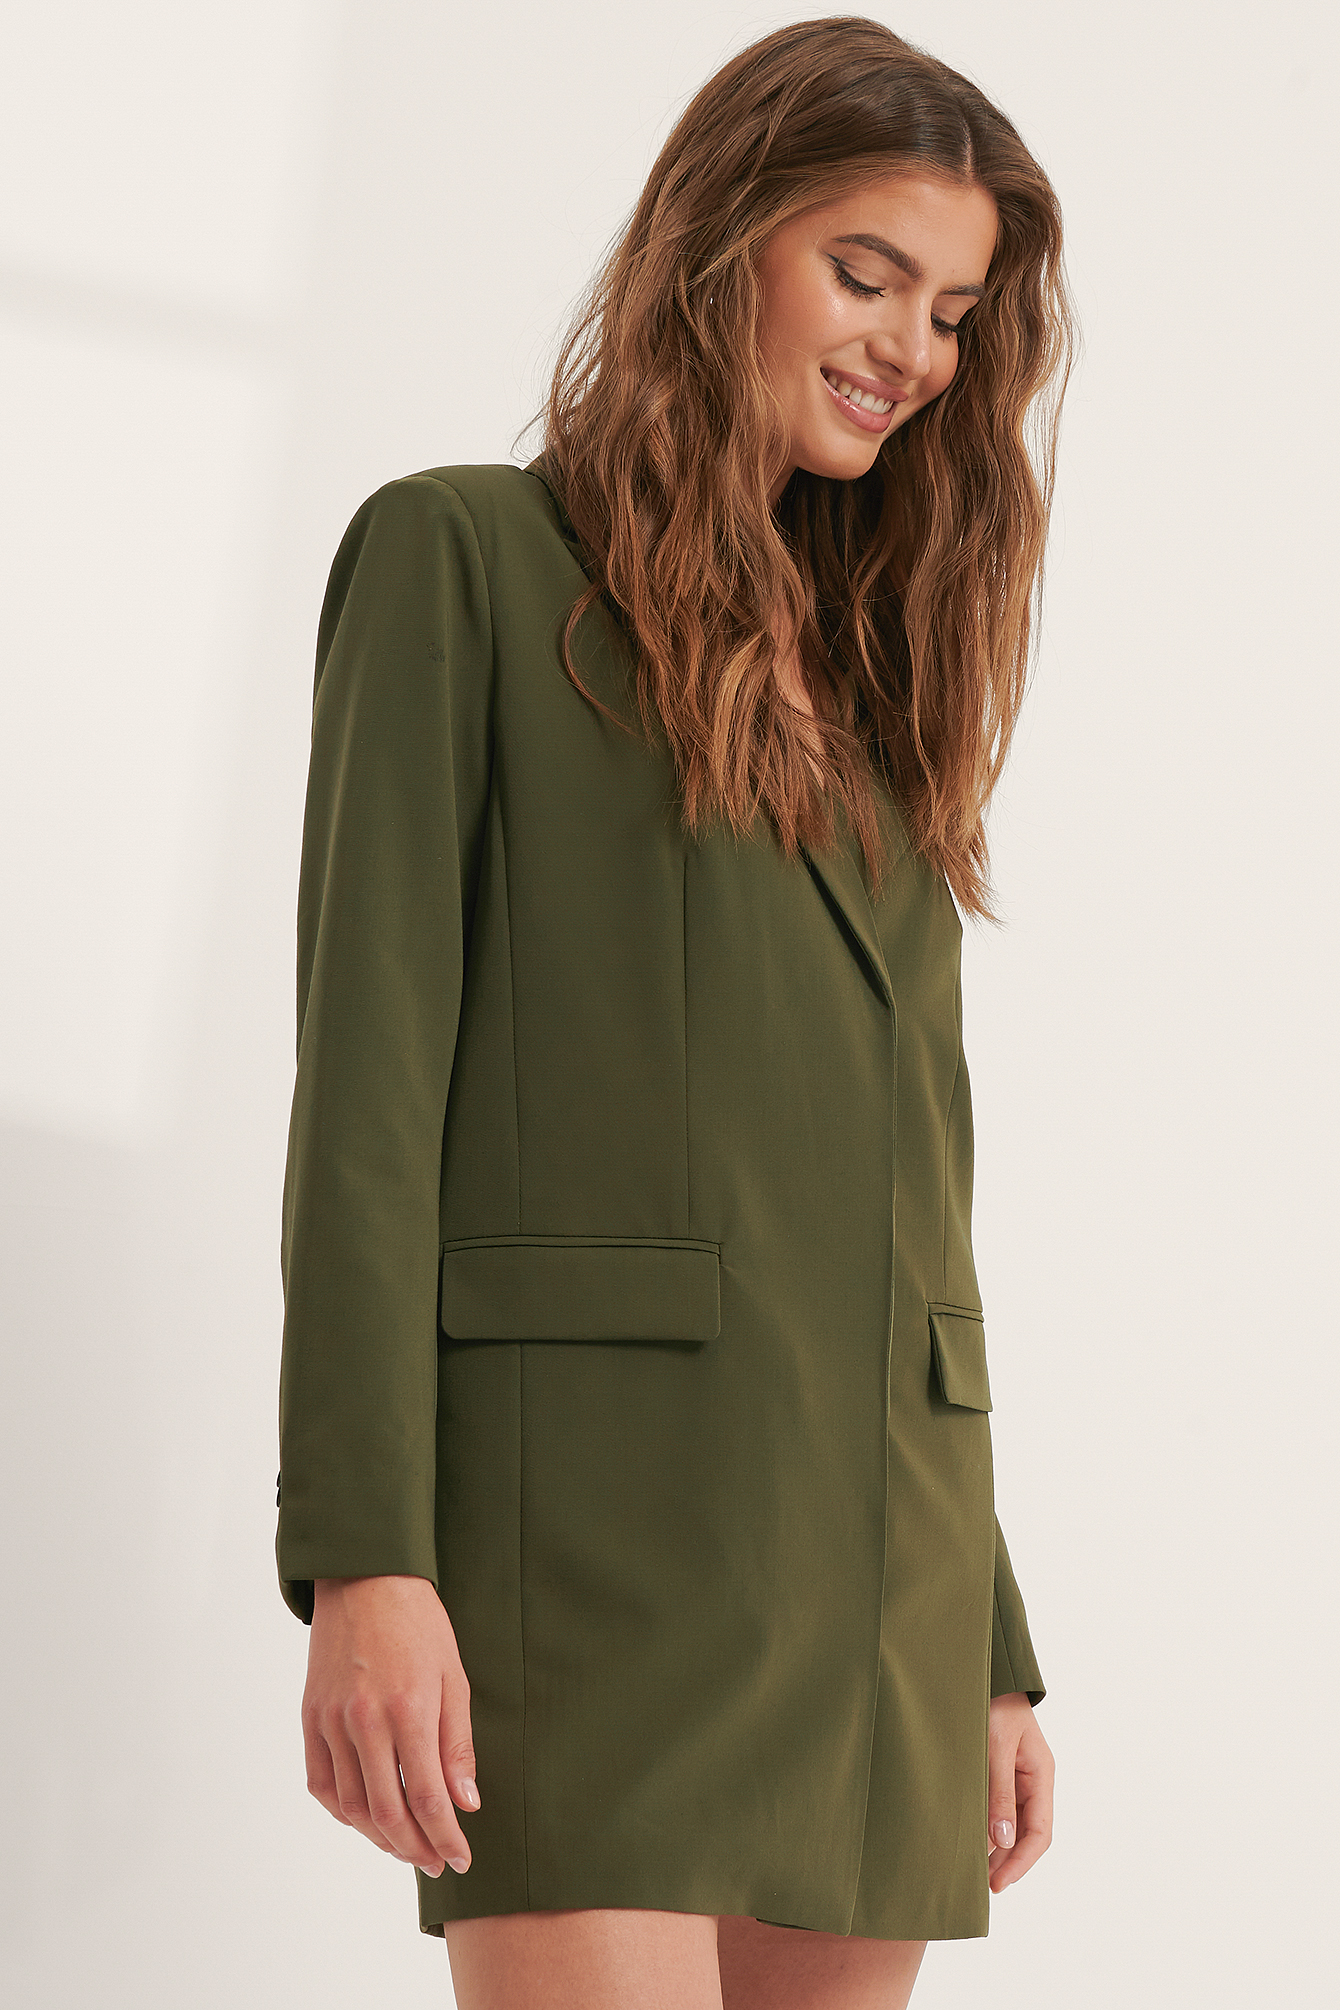 Dark Green Blazer Dress